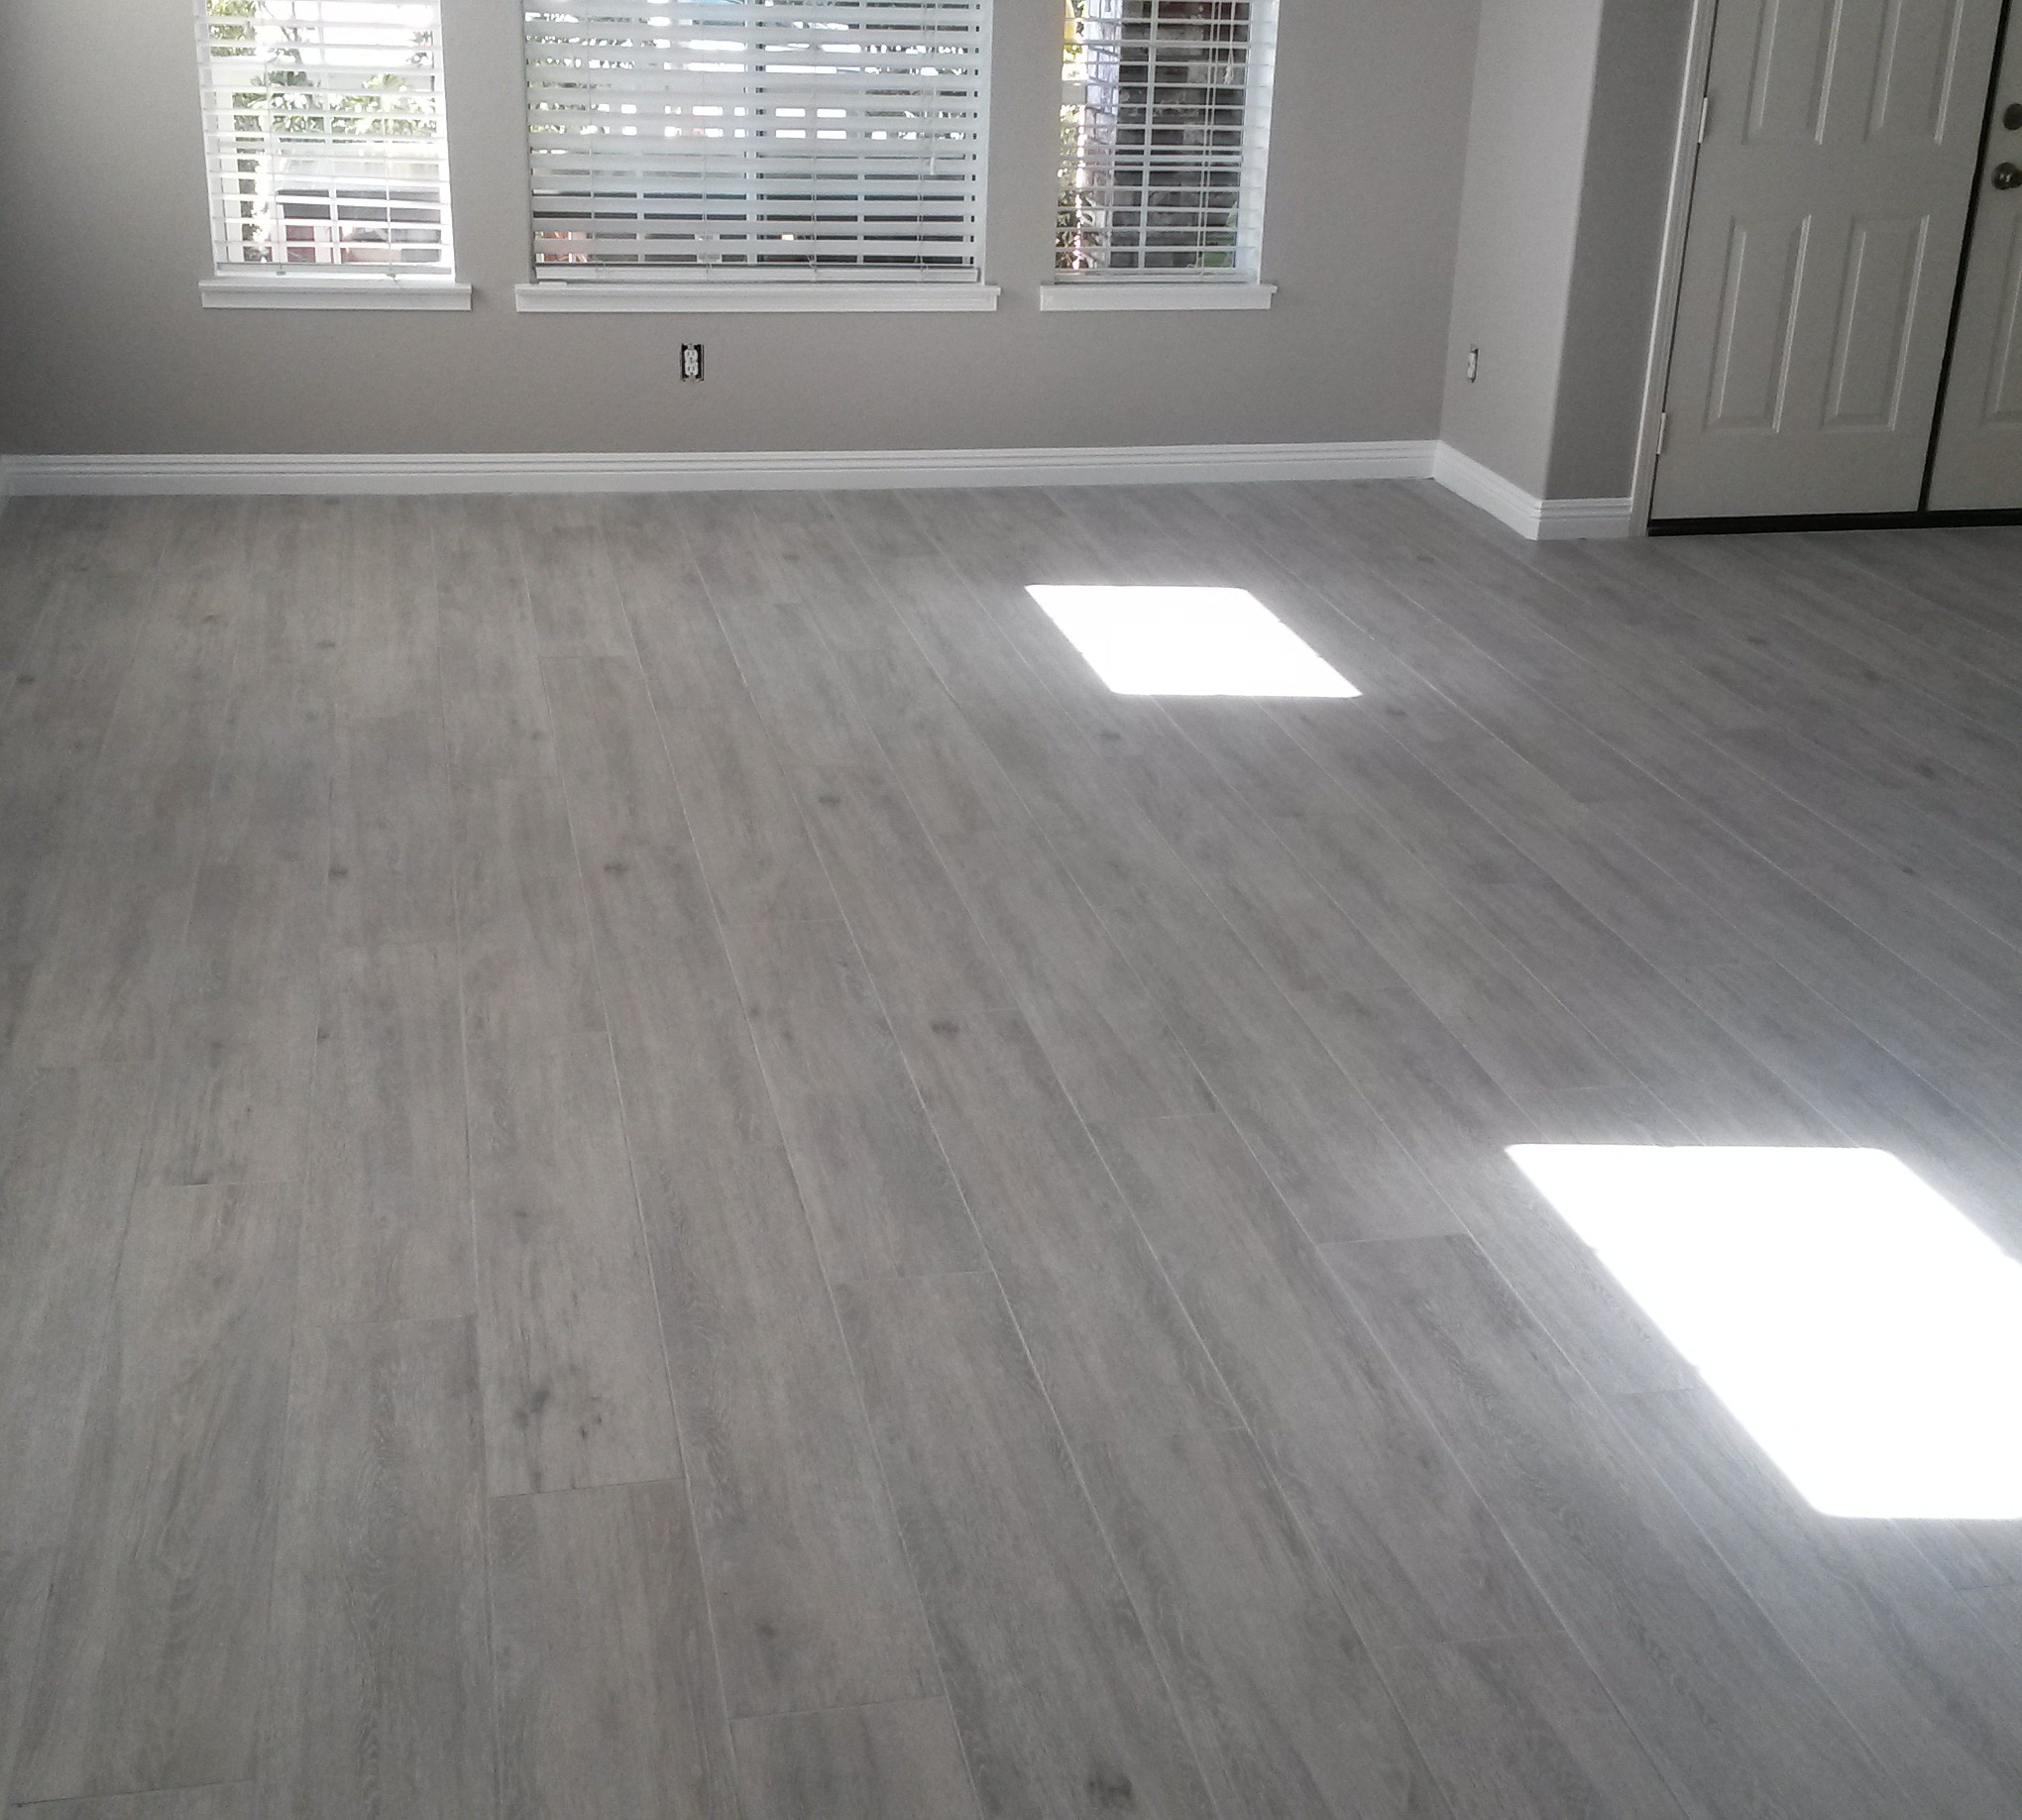 Large Grey Porcelain Wood Tile Planks